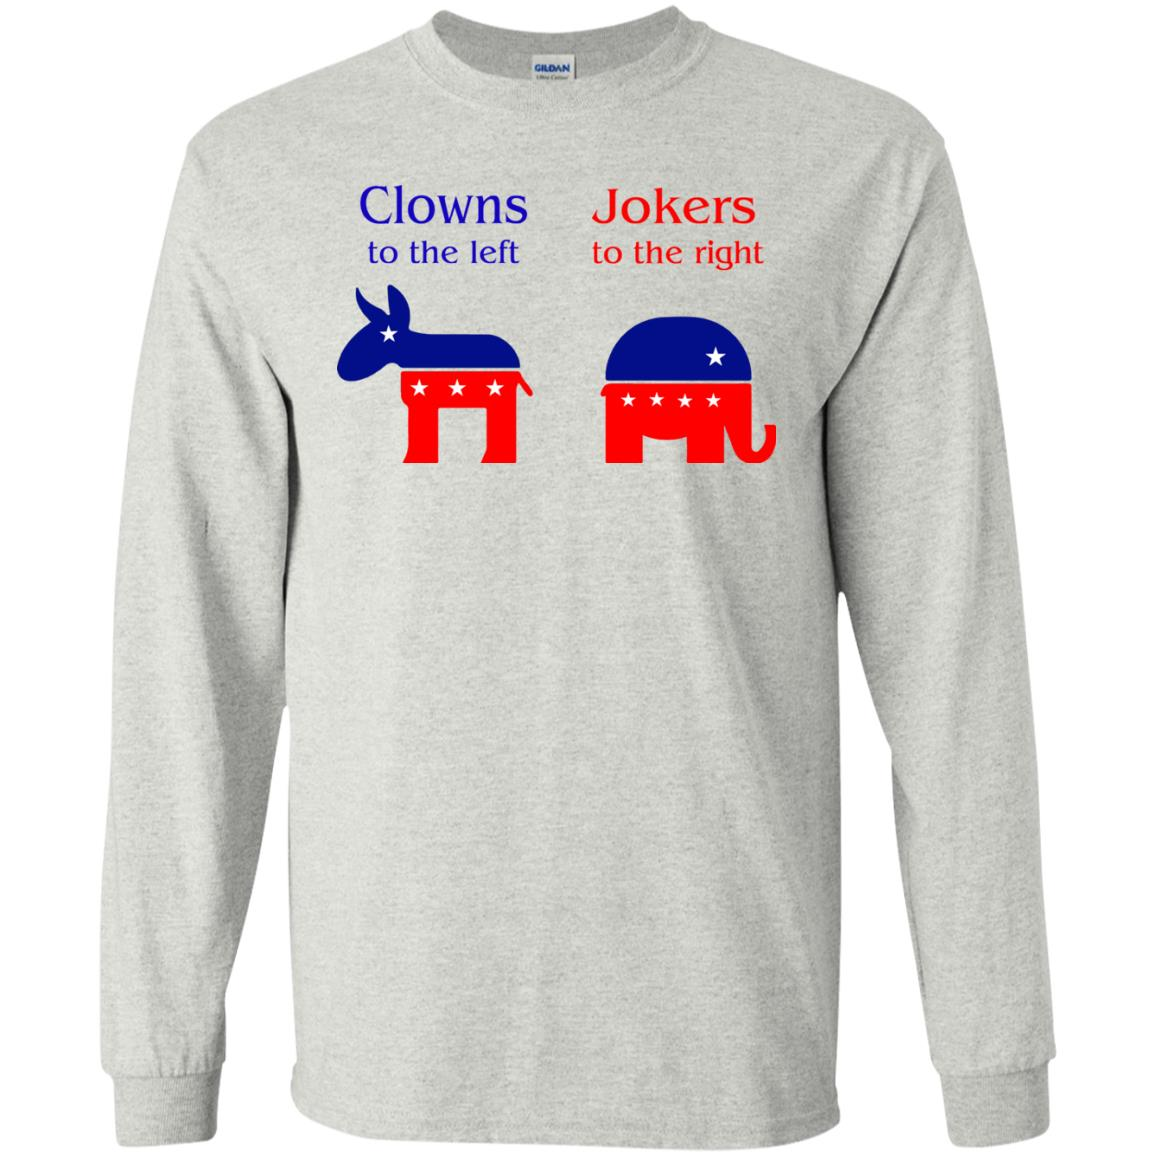 image 75 - Clowns To The Left, Jokers To The Right Shirt, Sweatshirt, Hoodie